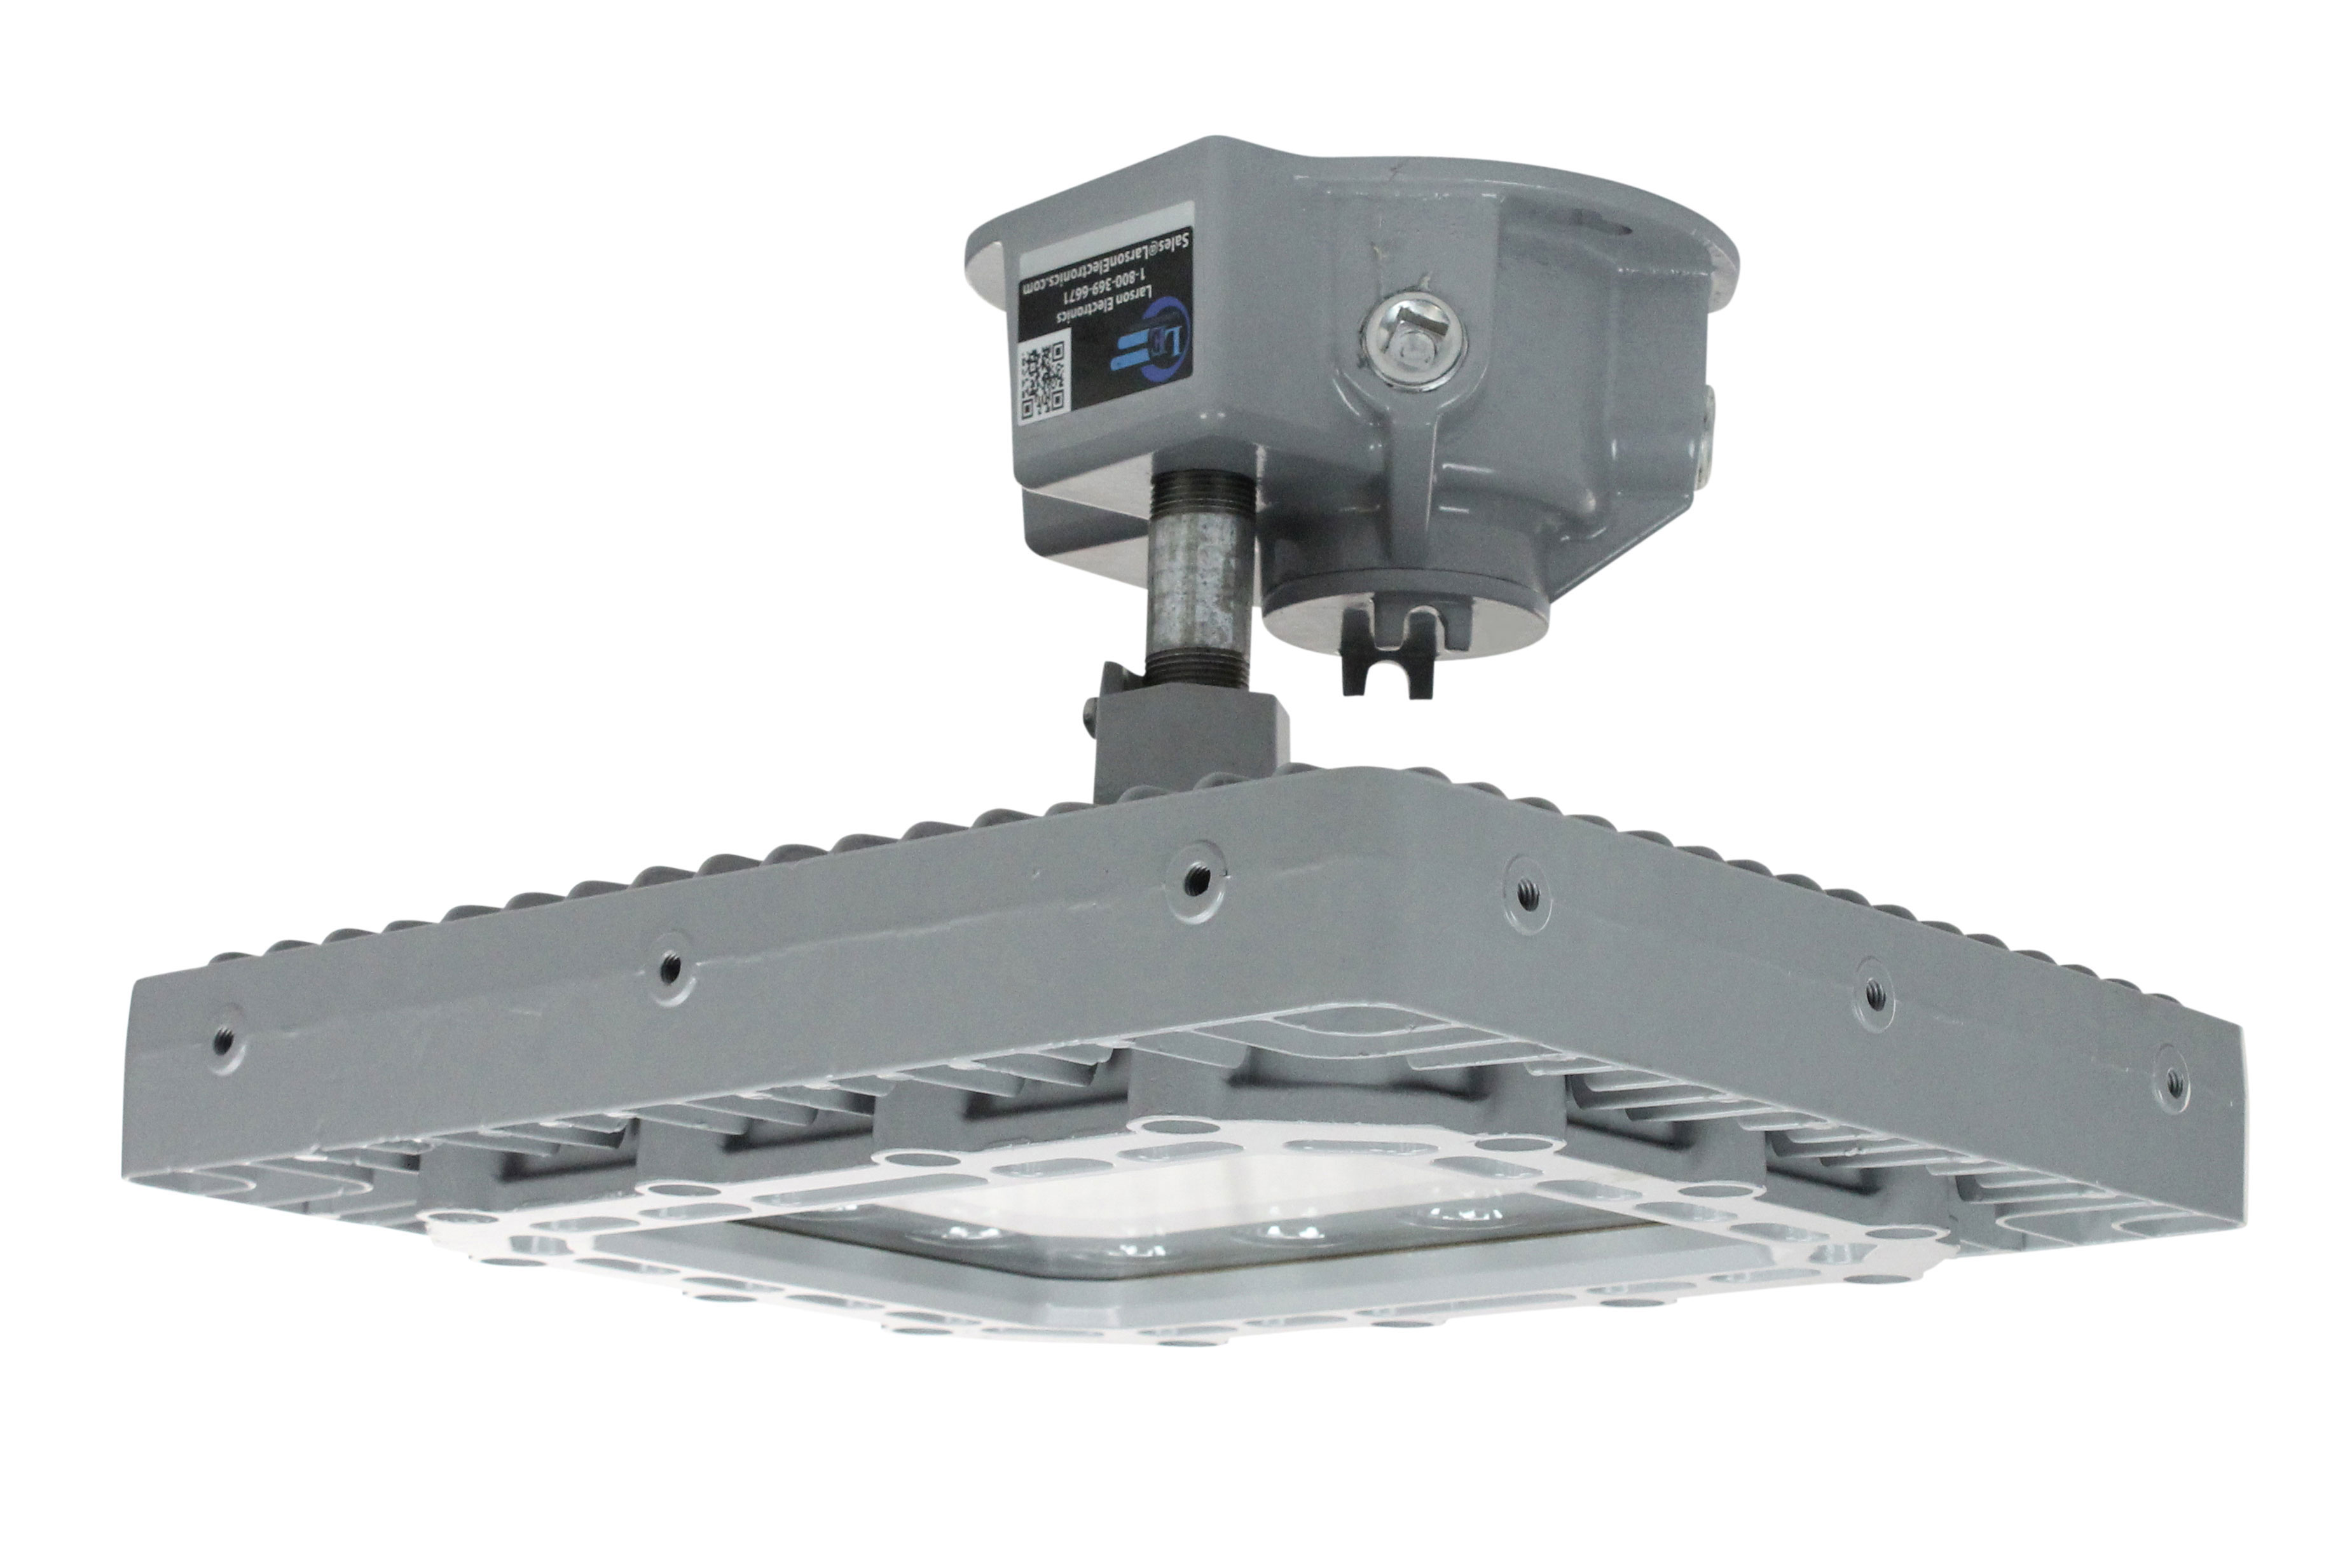 150 Watt Explosion Proof Led Light Fixture Equipped With A Ceiling Mountclass 1 Division 2 For Hazardous Locations